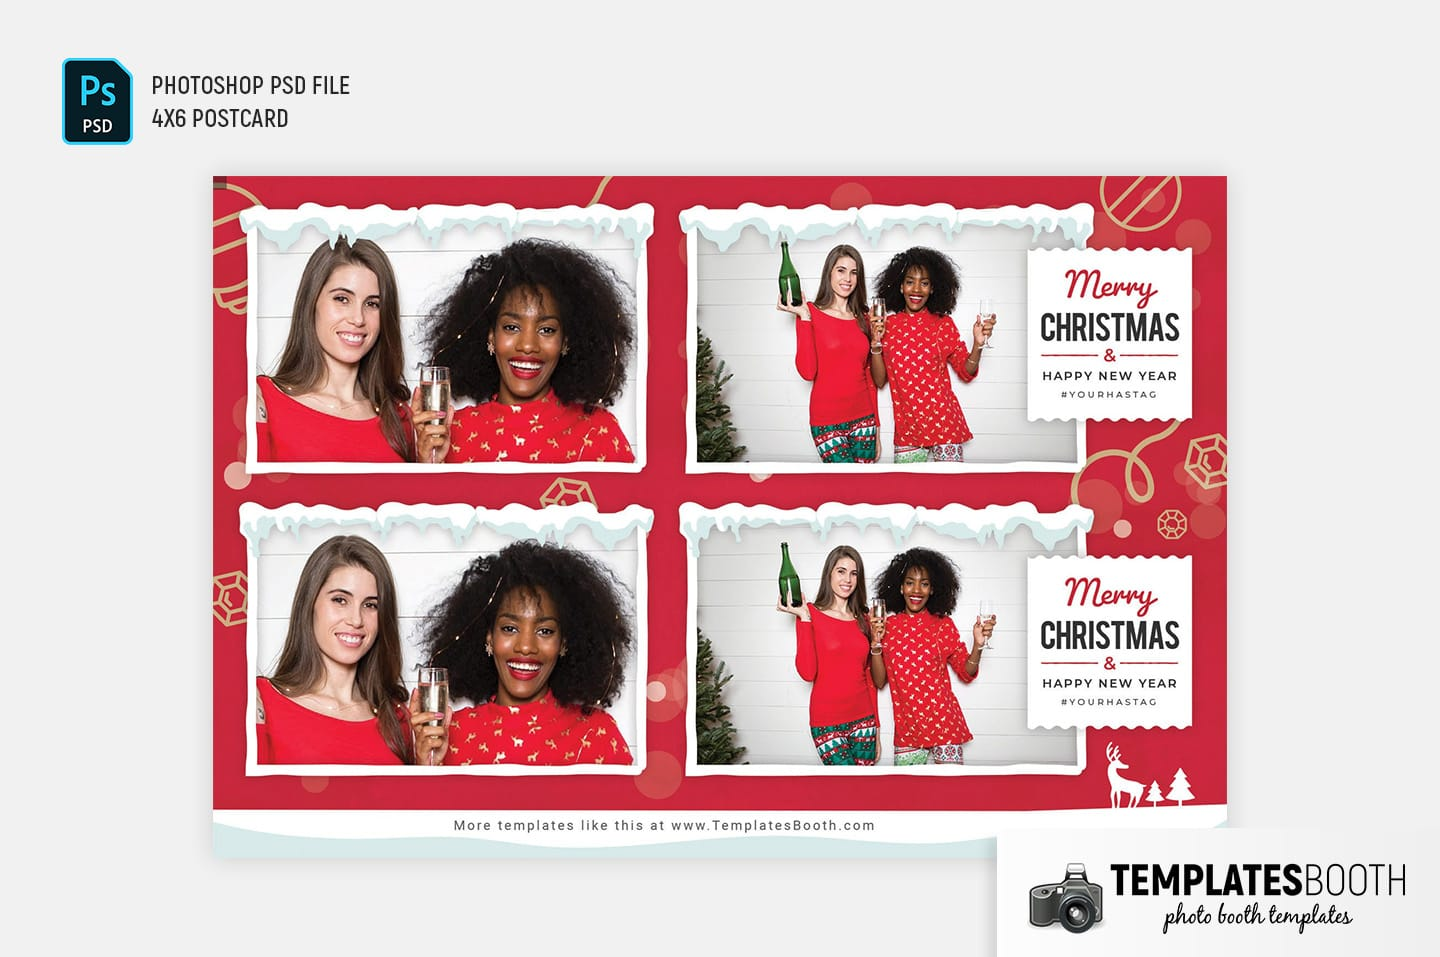 Merry Christmas Photo Booth Template (4x6 postcard)